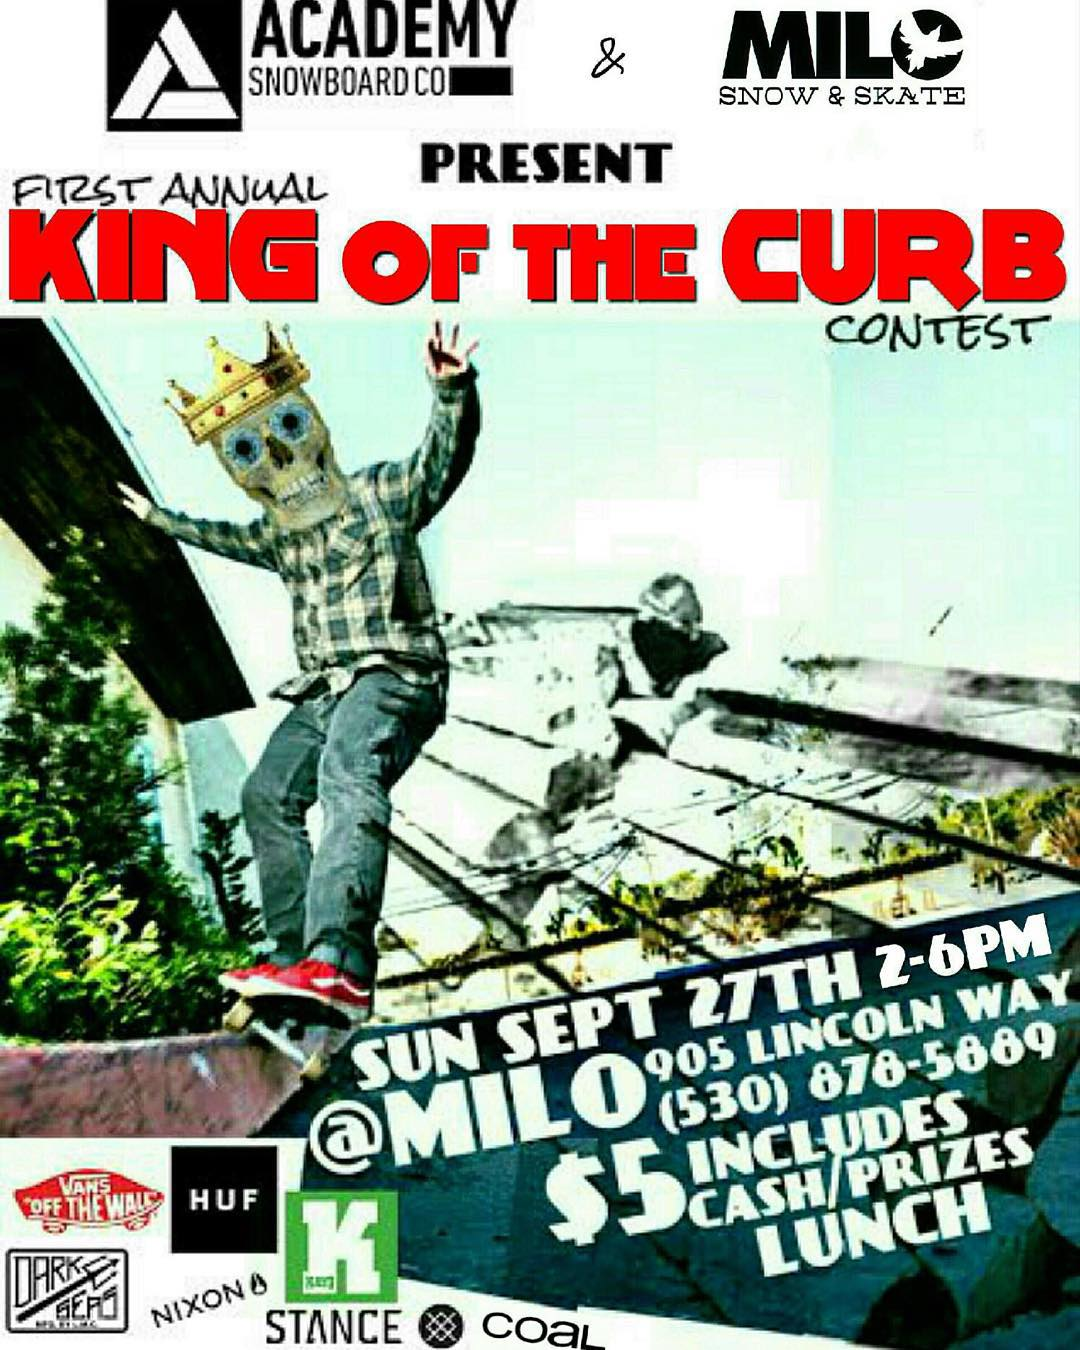 Staying true to our roots we are one of the only snowboard companies that is supporting grassroots skateboarding.  Get out to @milo_auburn this Sunday for King Of The Curb! #supportlocal @_breakfree_